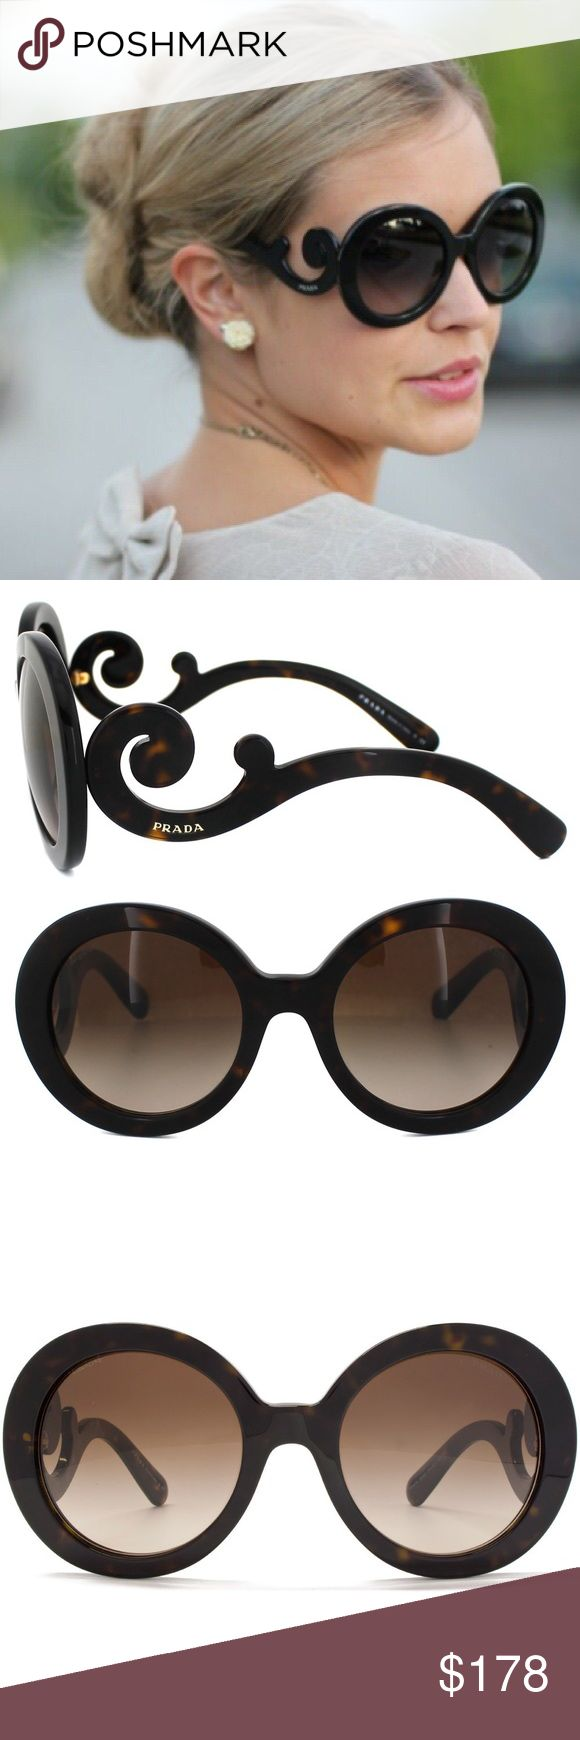 Authentic Prada Gradient PR27 Swirl Baroque Havana Authentic Prada Baroque Swirl Havana - NEw in the box - I got the squared one which fits me better - Brand New in the original Prada white case Frame Color: Havana Lens Color: Brown Gradient - Round Style Gradient Lens UVA/UVB Protection 55mm / 22mm / 135mm Prada Accessories Sunglasses